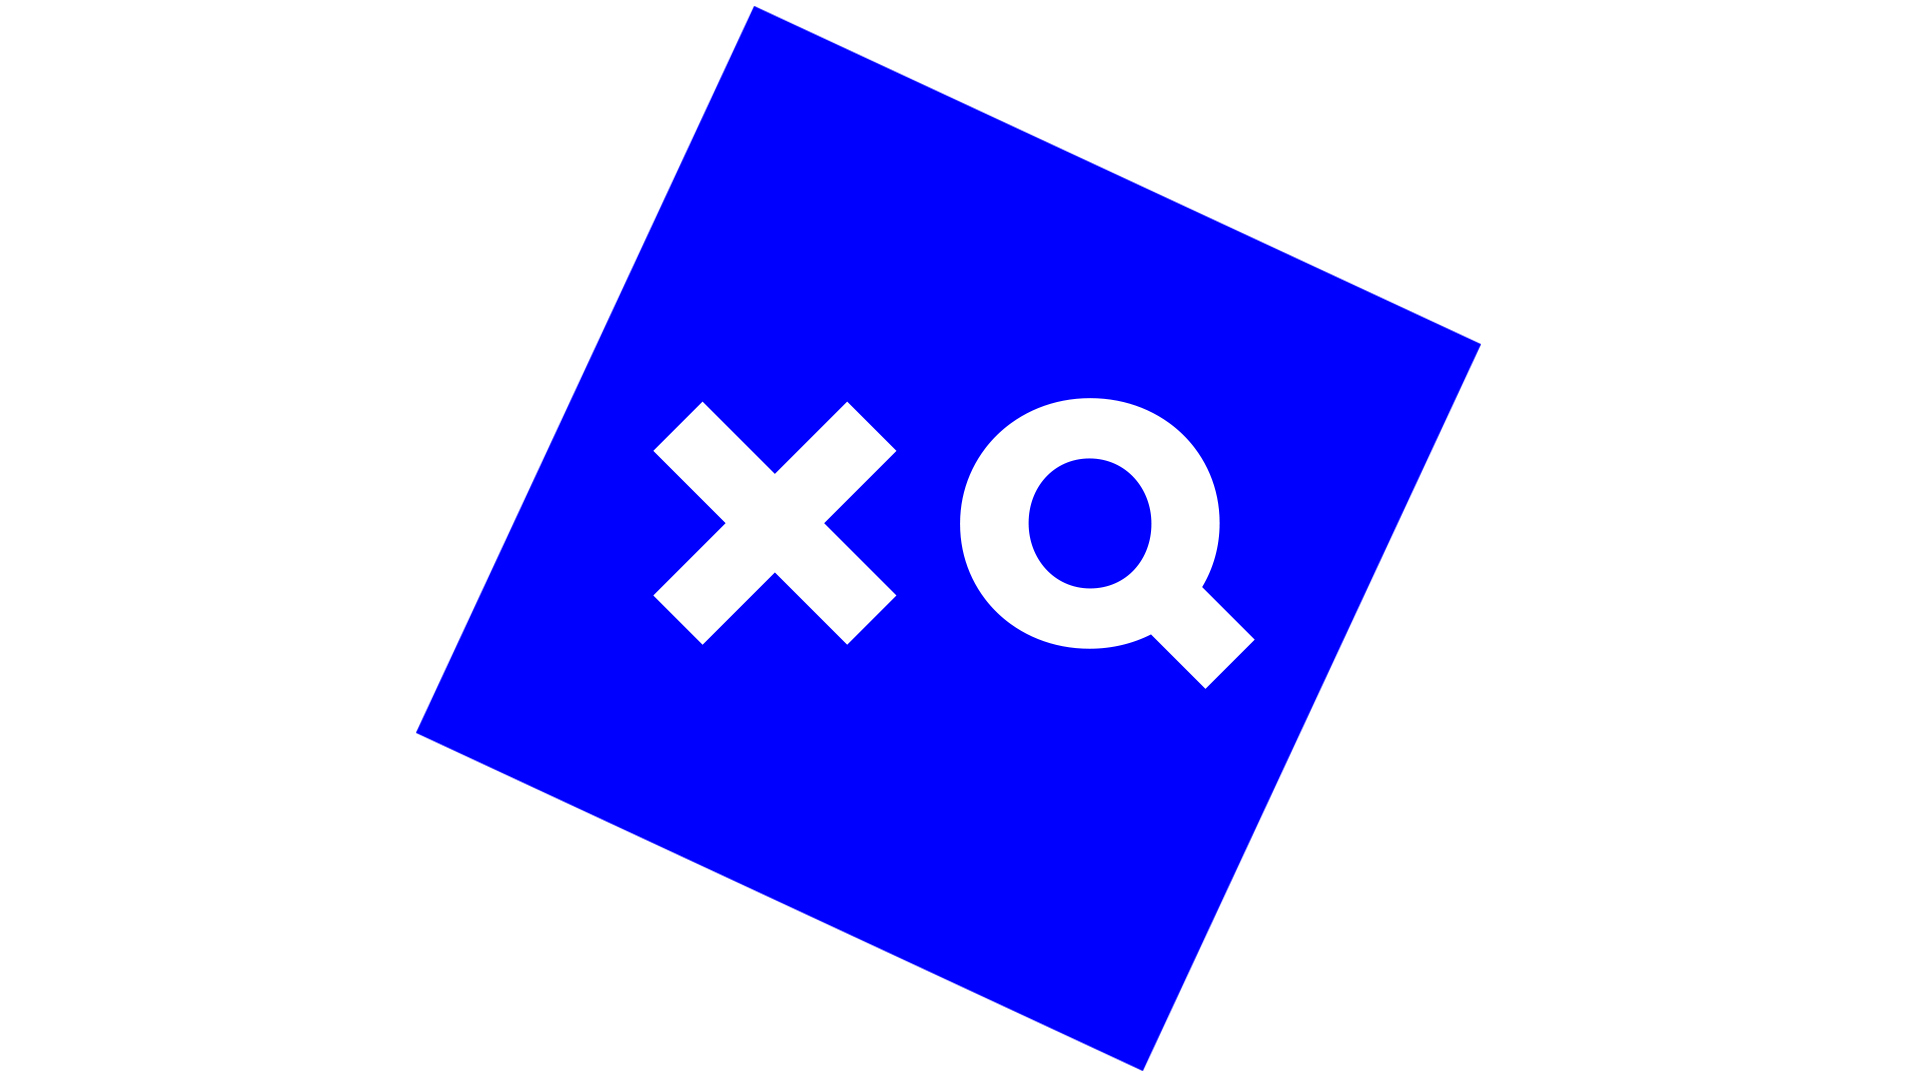 xquer